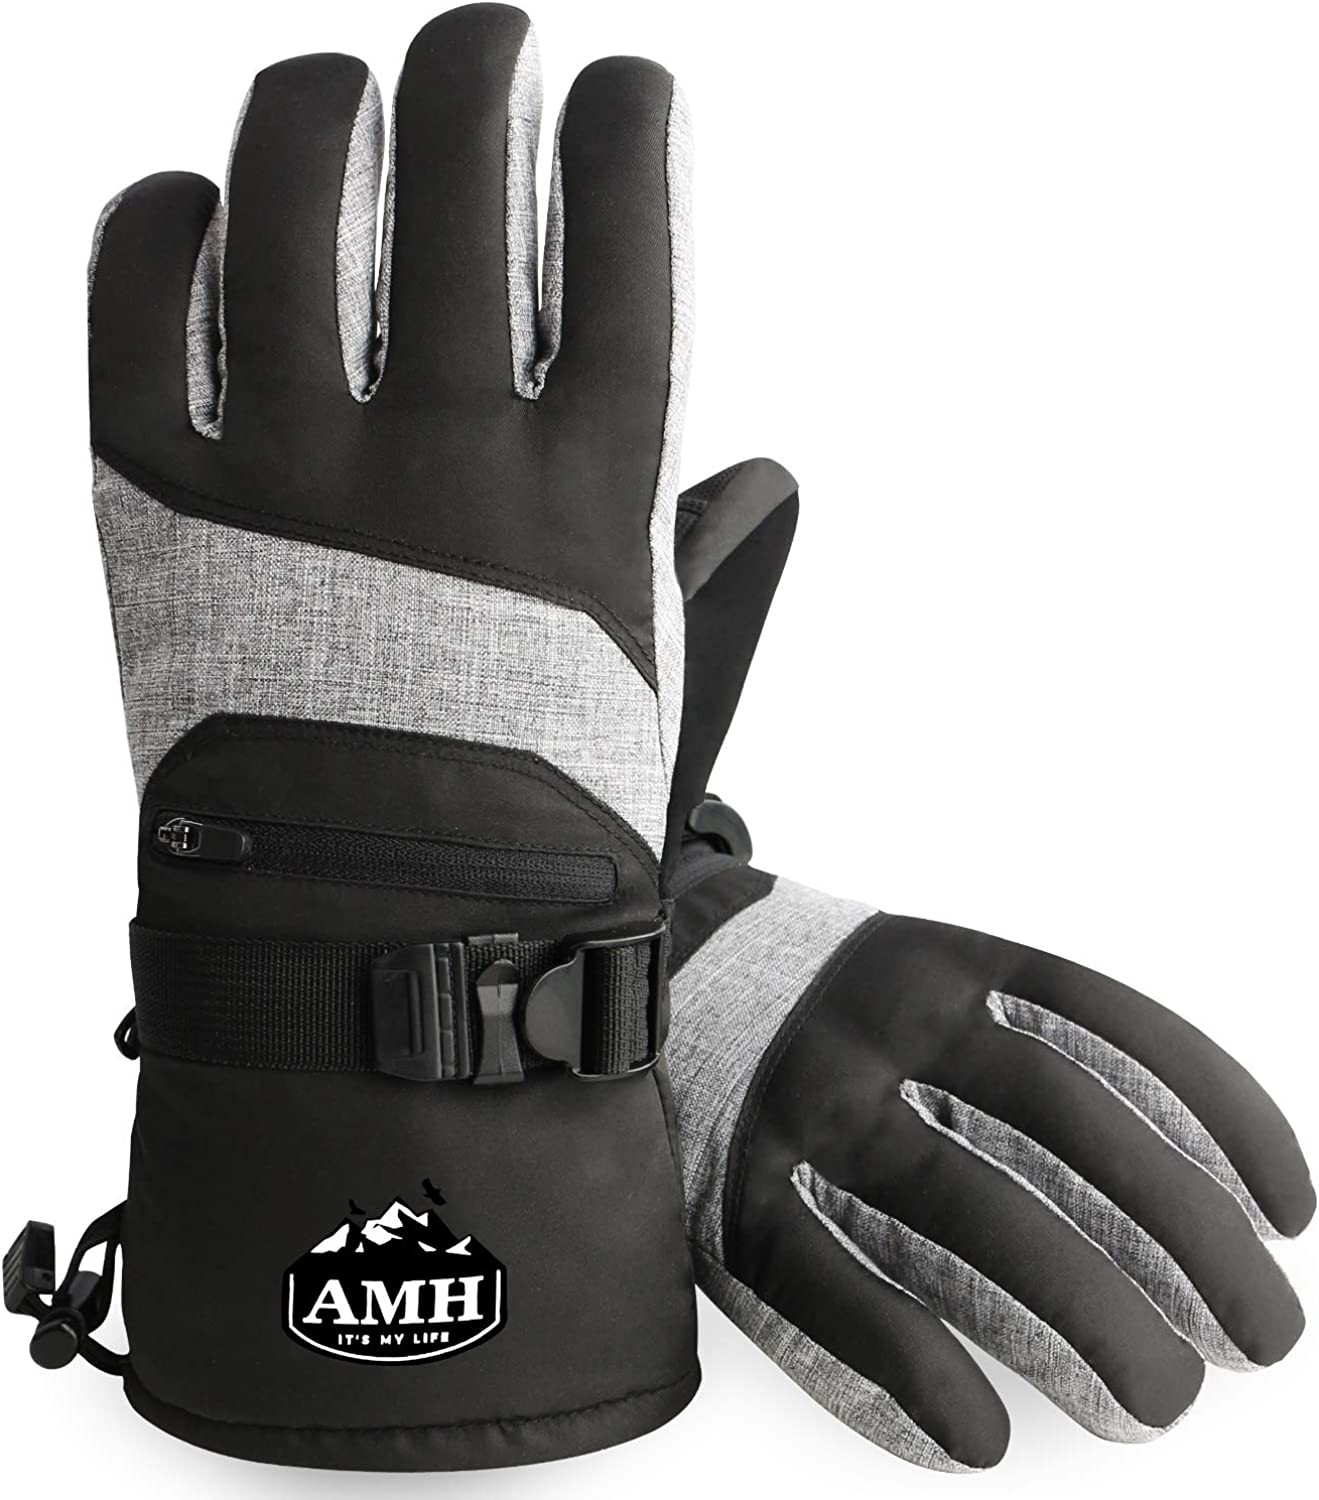 2 pair $21.99+FREE SHIPPING L Midwest Gloves /& Gear Max Performance Work Glove